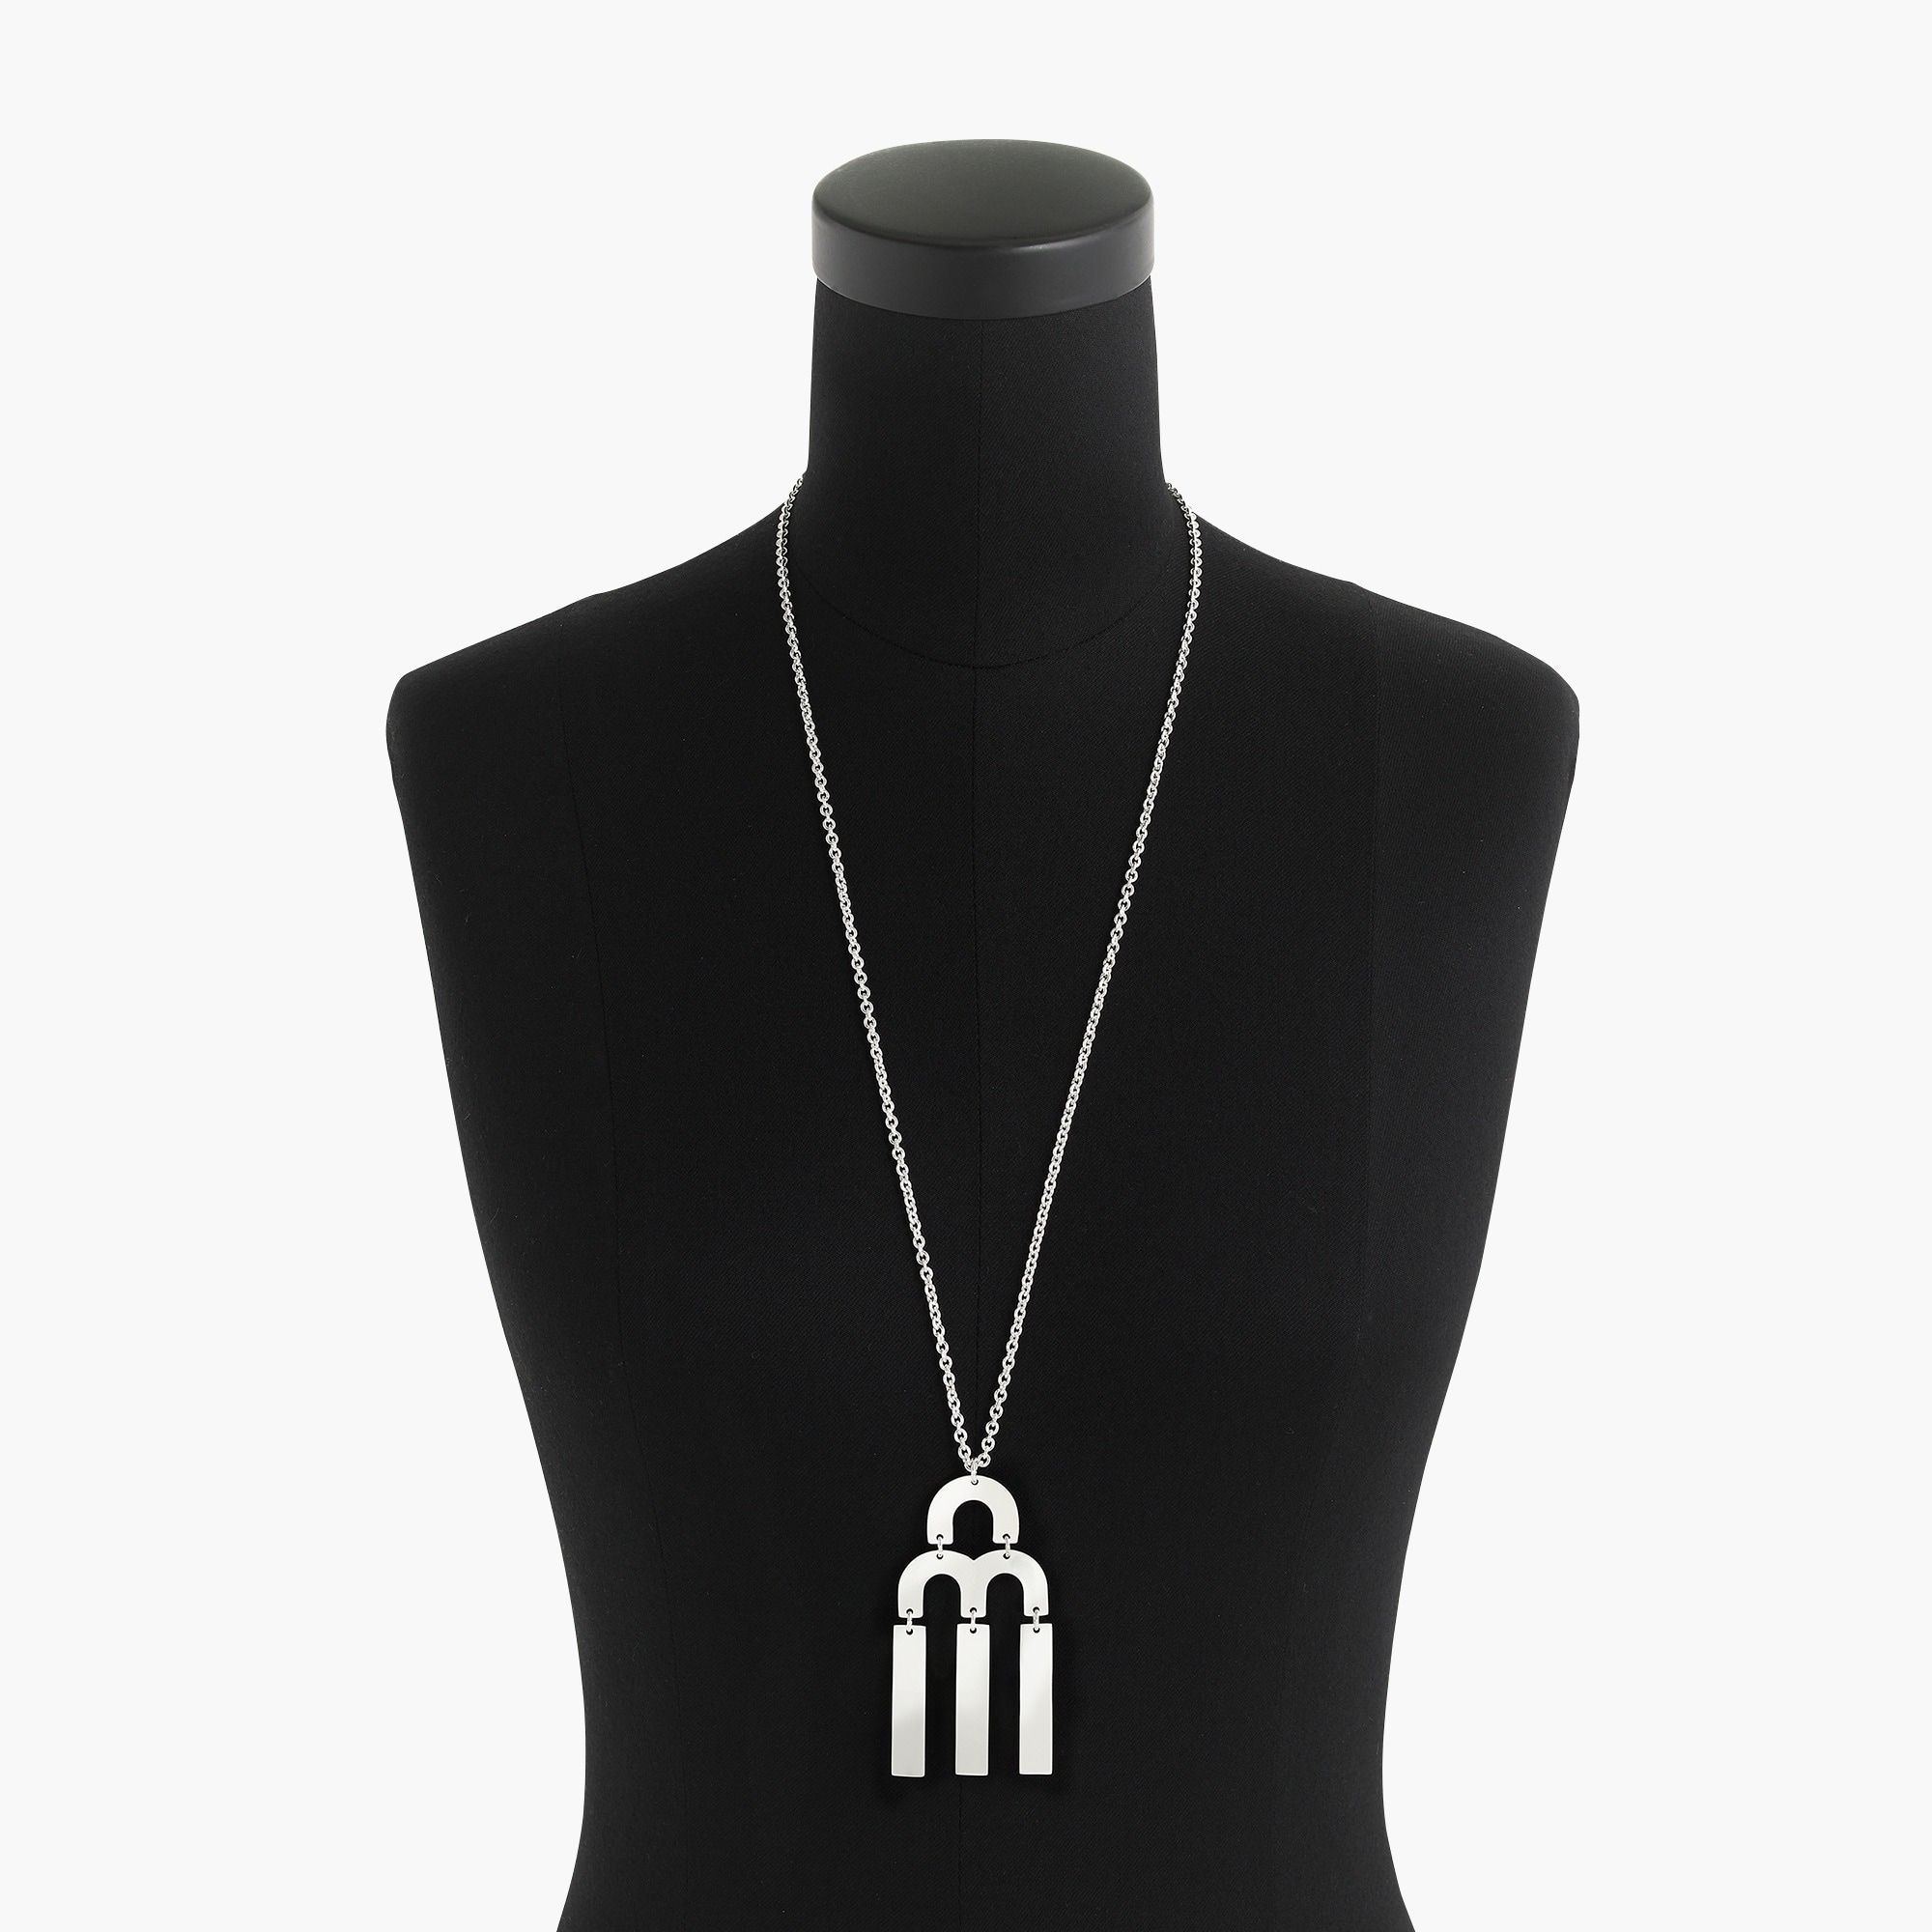 Image 2 for Tuning fork necklace